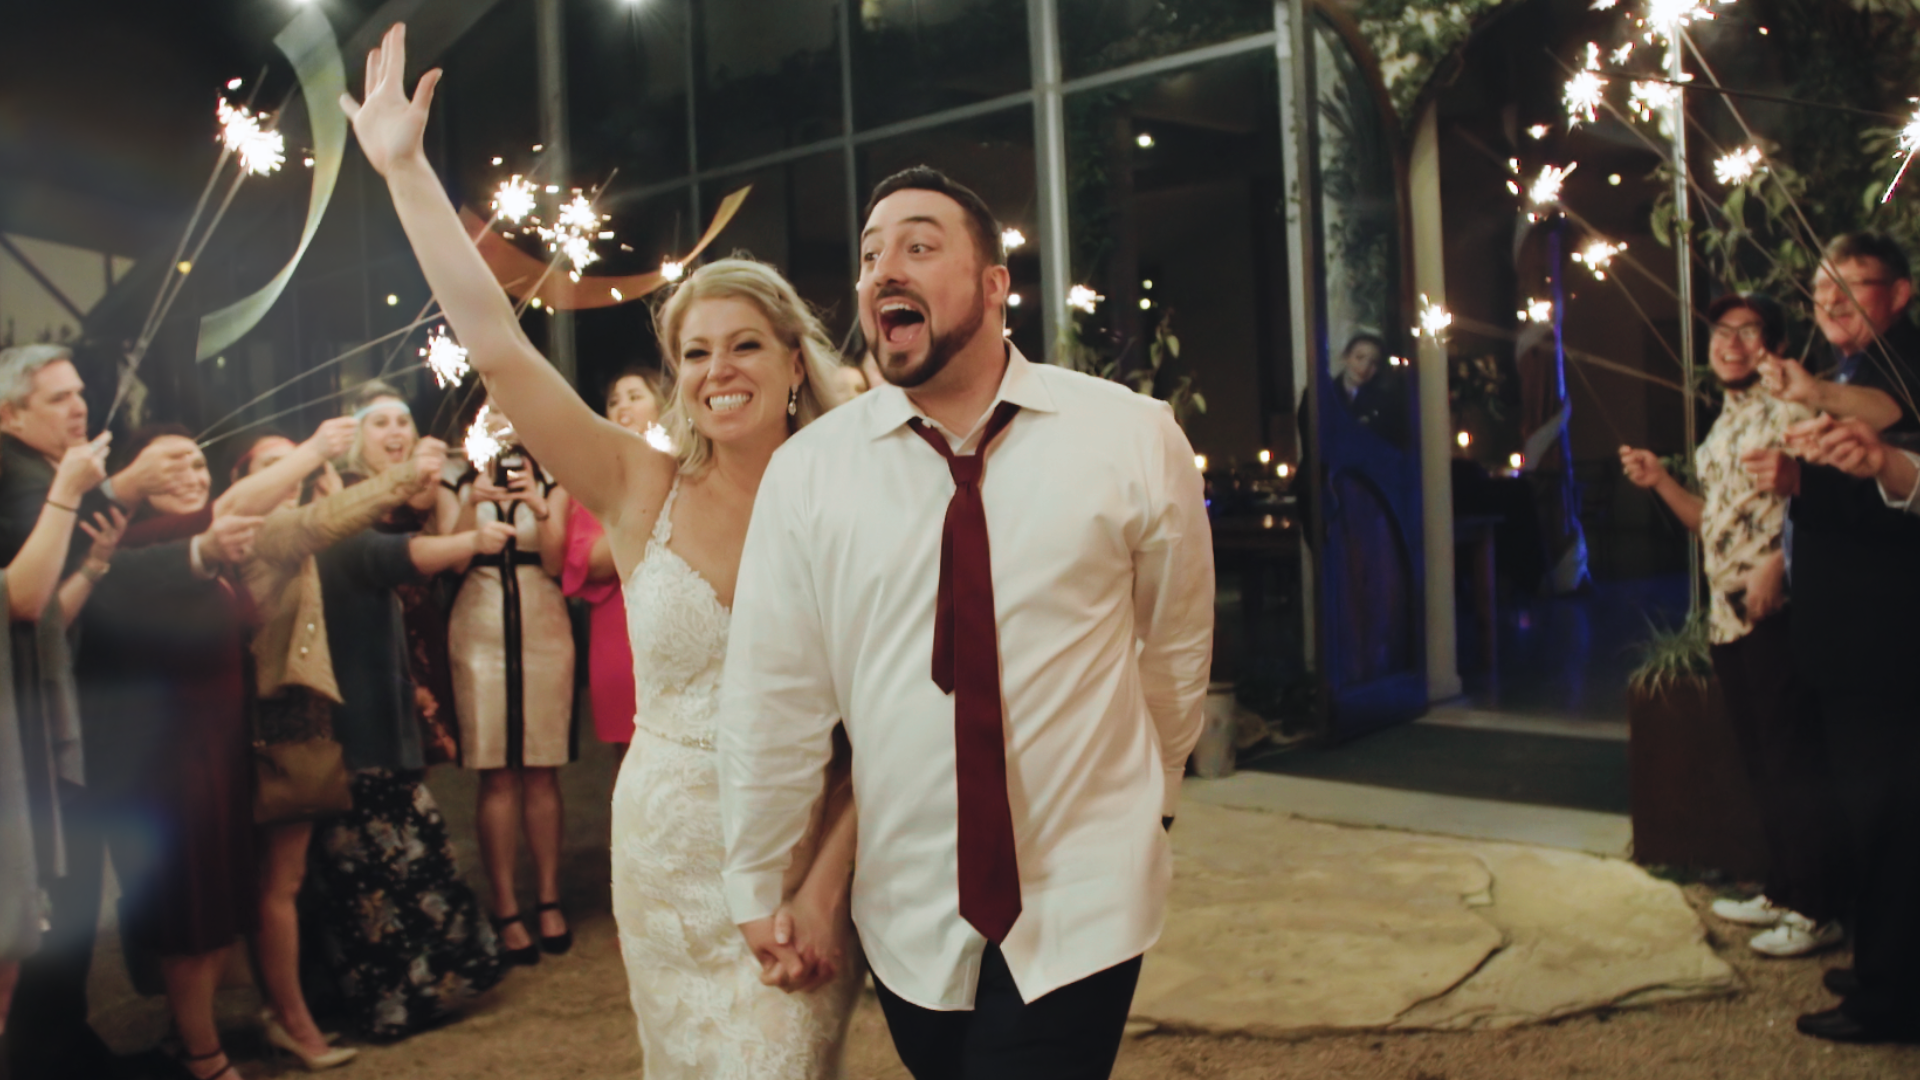 Barr_Mansion_Austin_Wedding_Videographer_New_Beginnings_Films_50.png